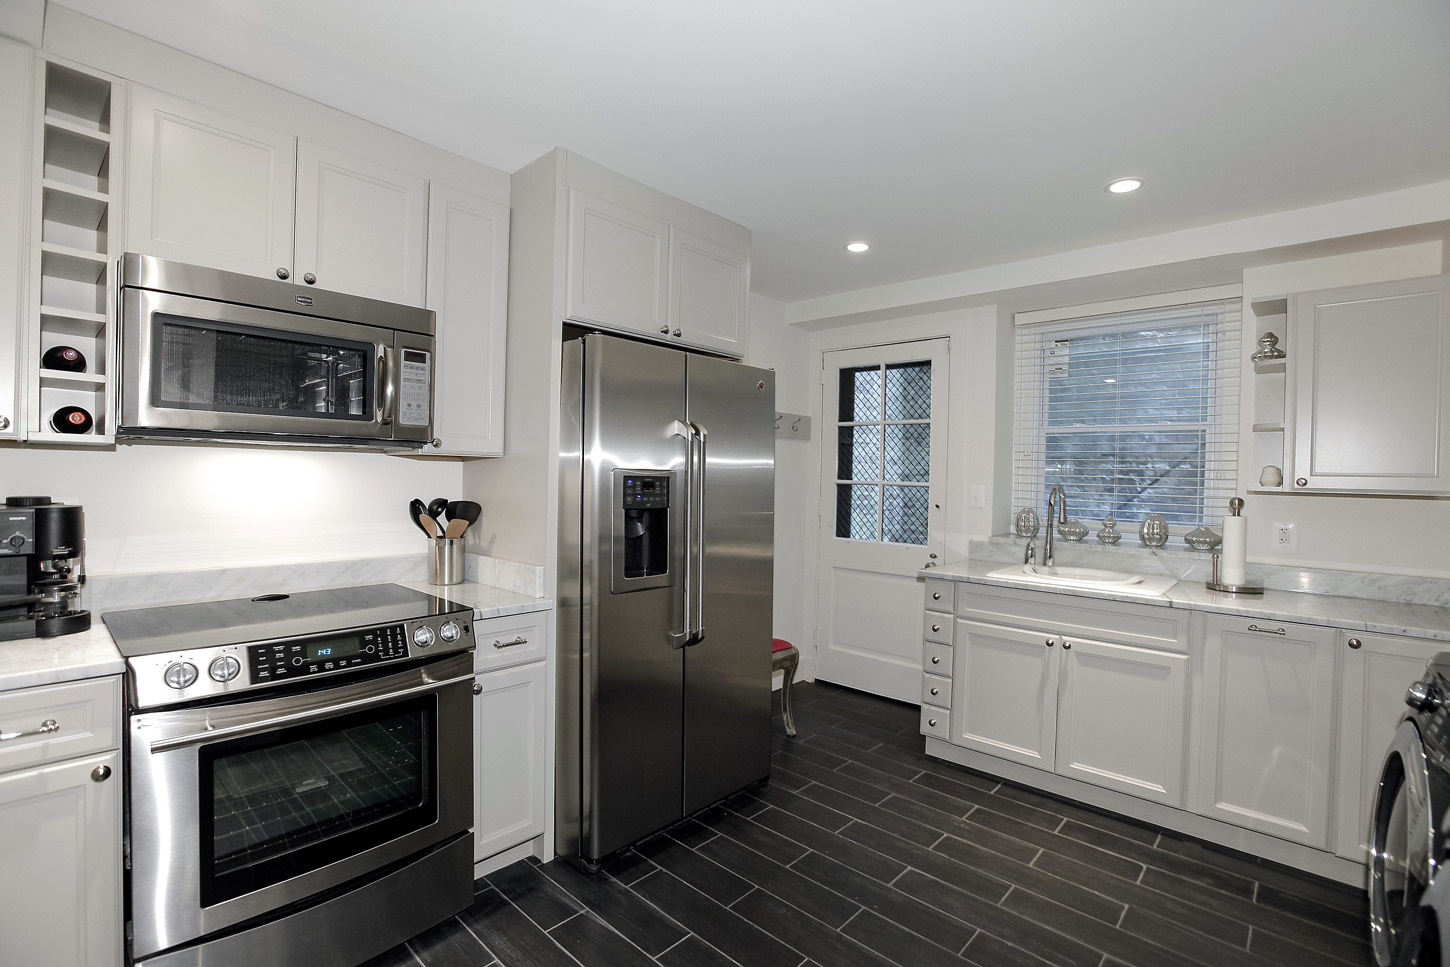 A second kitchen/laundry room in the Obamas' new house, in the Kalorama area of Northwest D.C. (Courtesy McFadden Group)